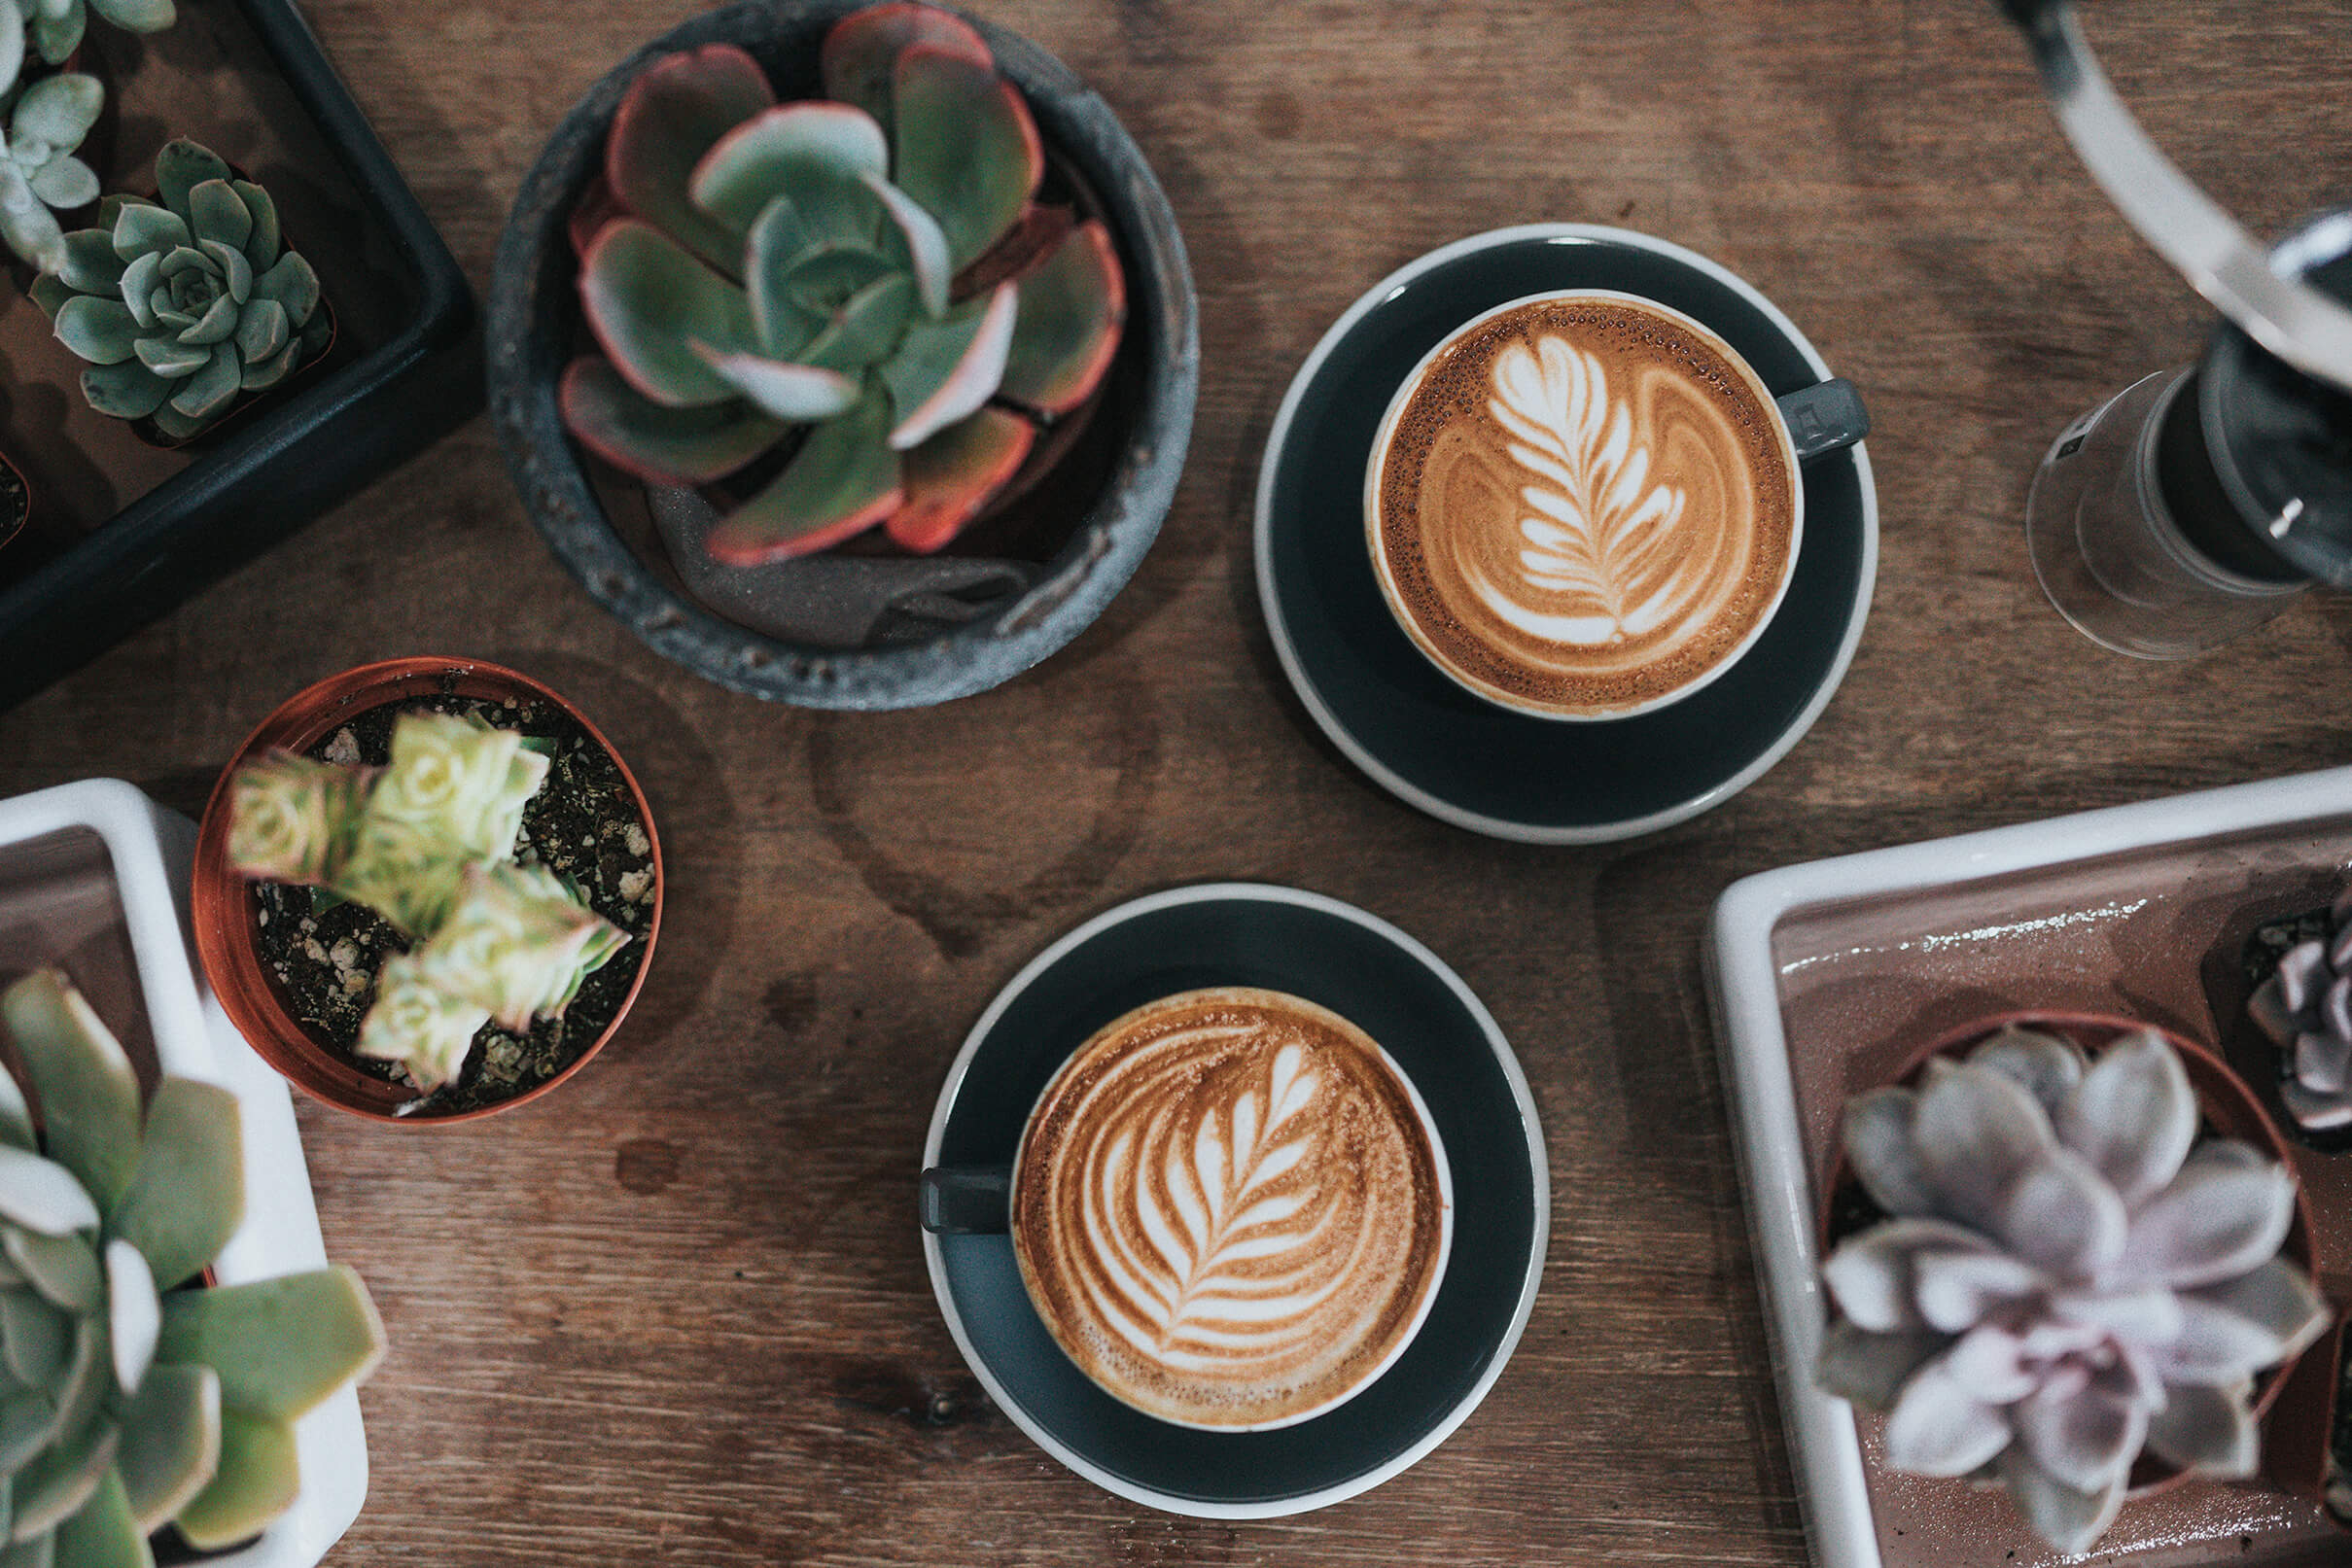 4 spending habits to kick (but keep buying coffee)